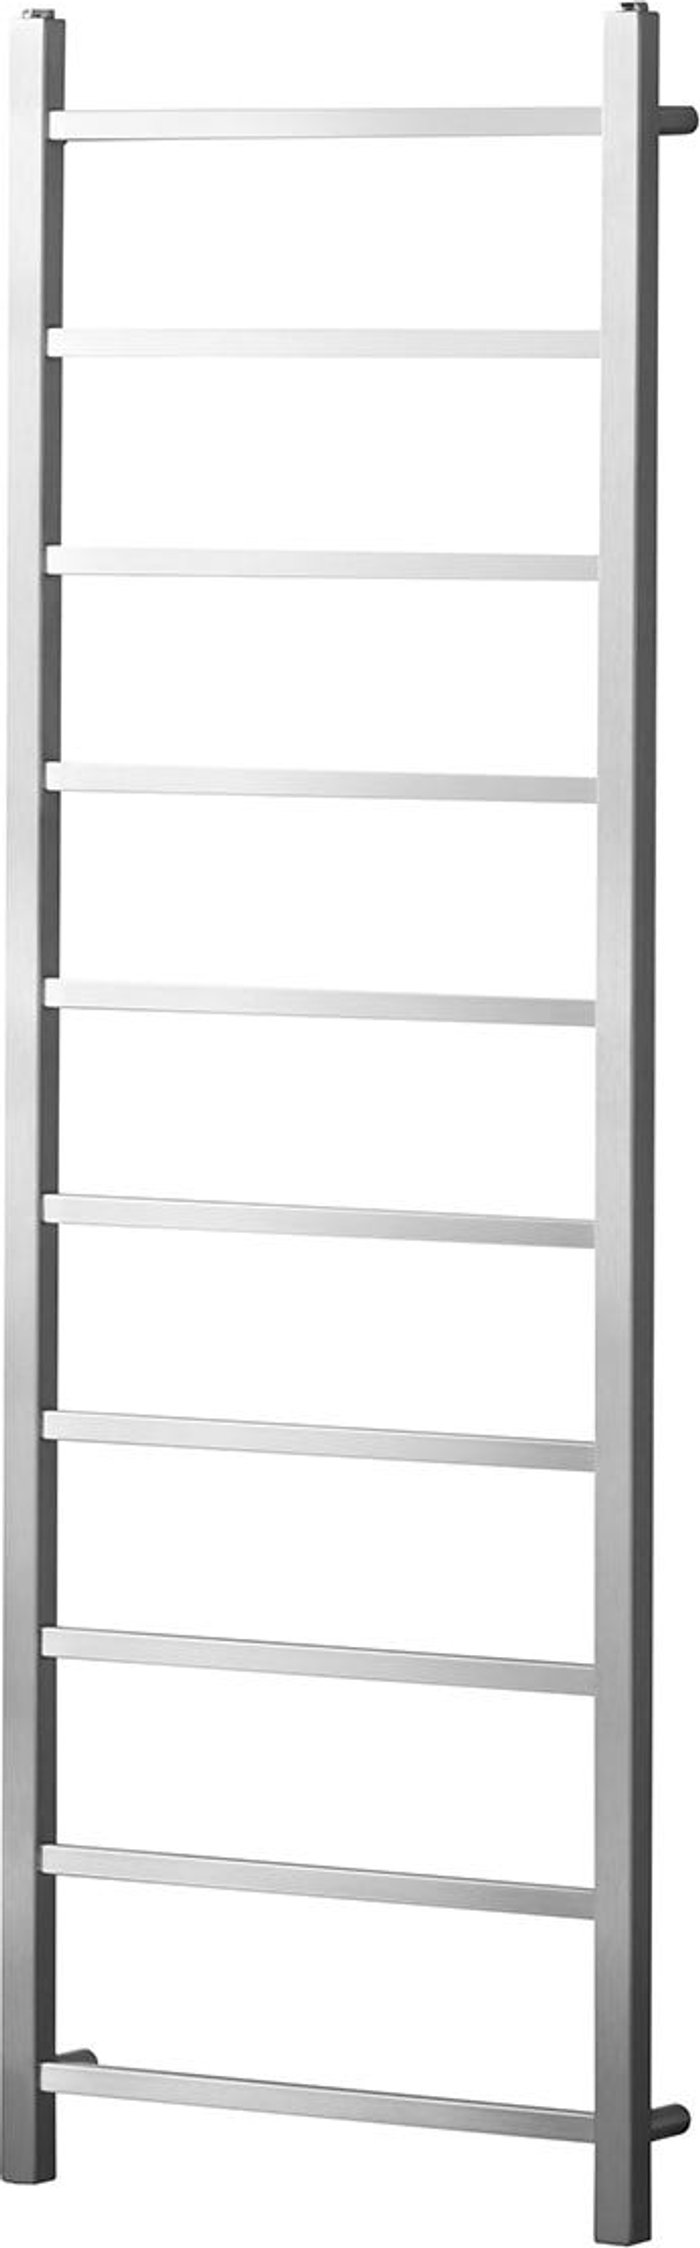 Towelrads Towelrads Diva Brushed Stainless Steel Towel Warmer 1500 x 500 993 BTUs